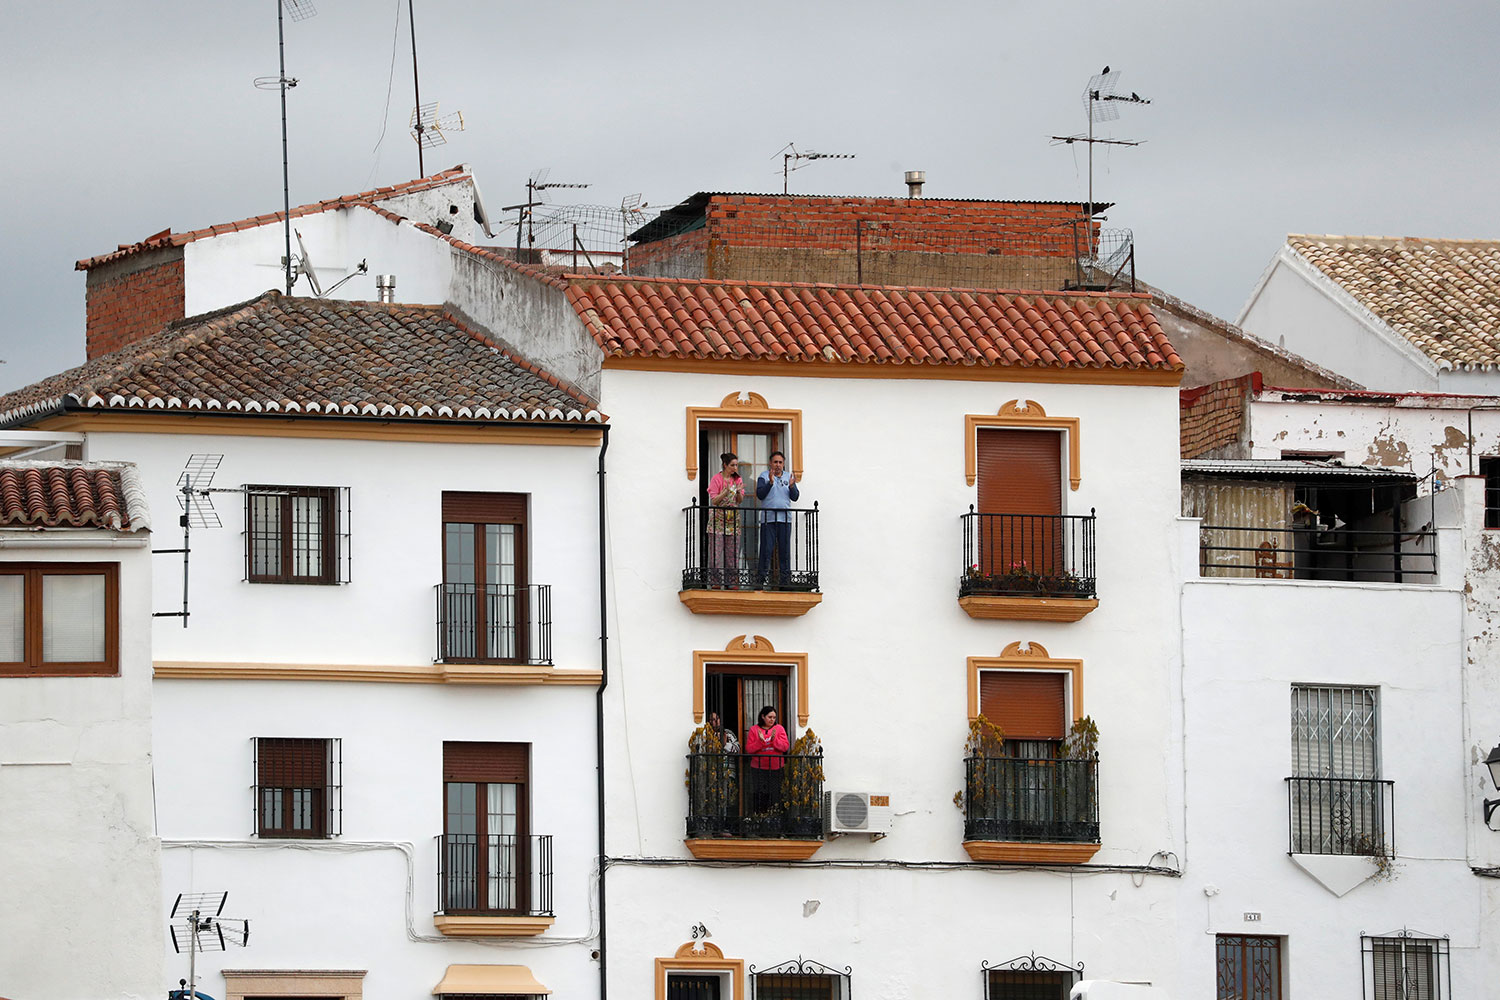 The picture shows a Spanish residential building with people on the balcony cheering.